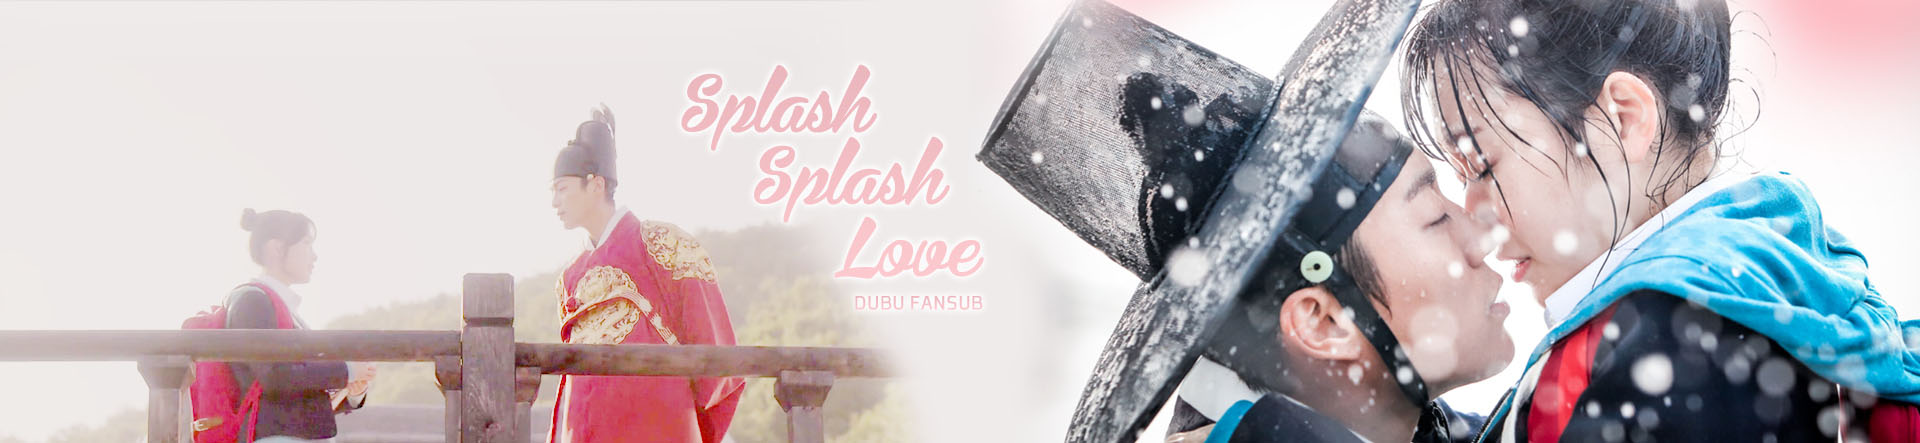 splash-splash-love-vostfr